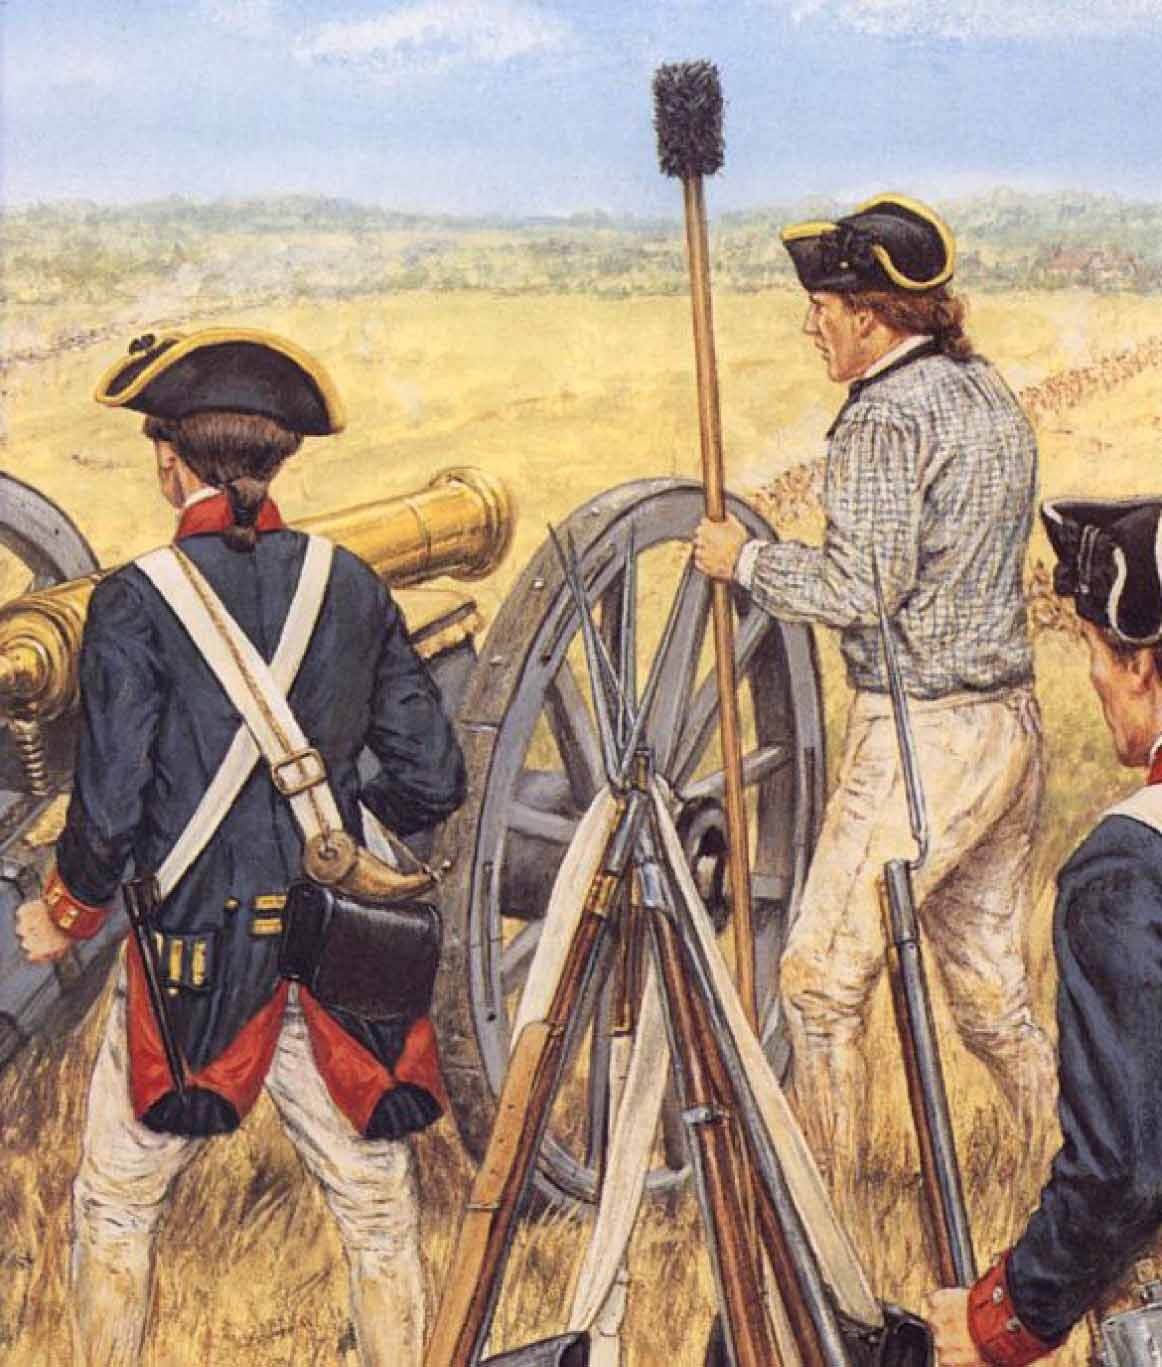 the american revolution whose revolution was Get information, facts, and pictures about american revolution at encyclopediacom make research projects and school reports about american revolution easy with credible articles from our free, online encyclopedia and dictionary.